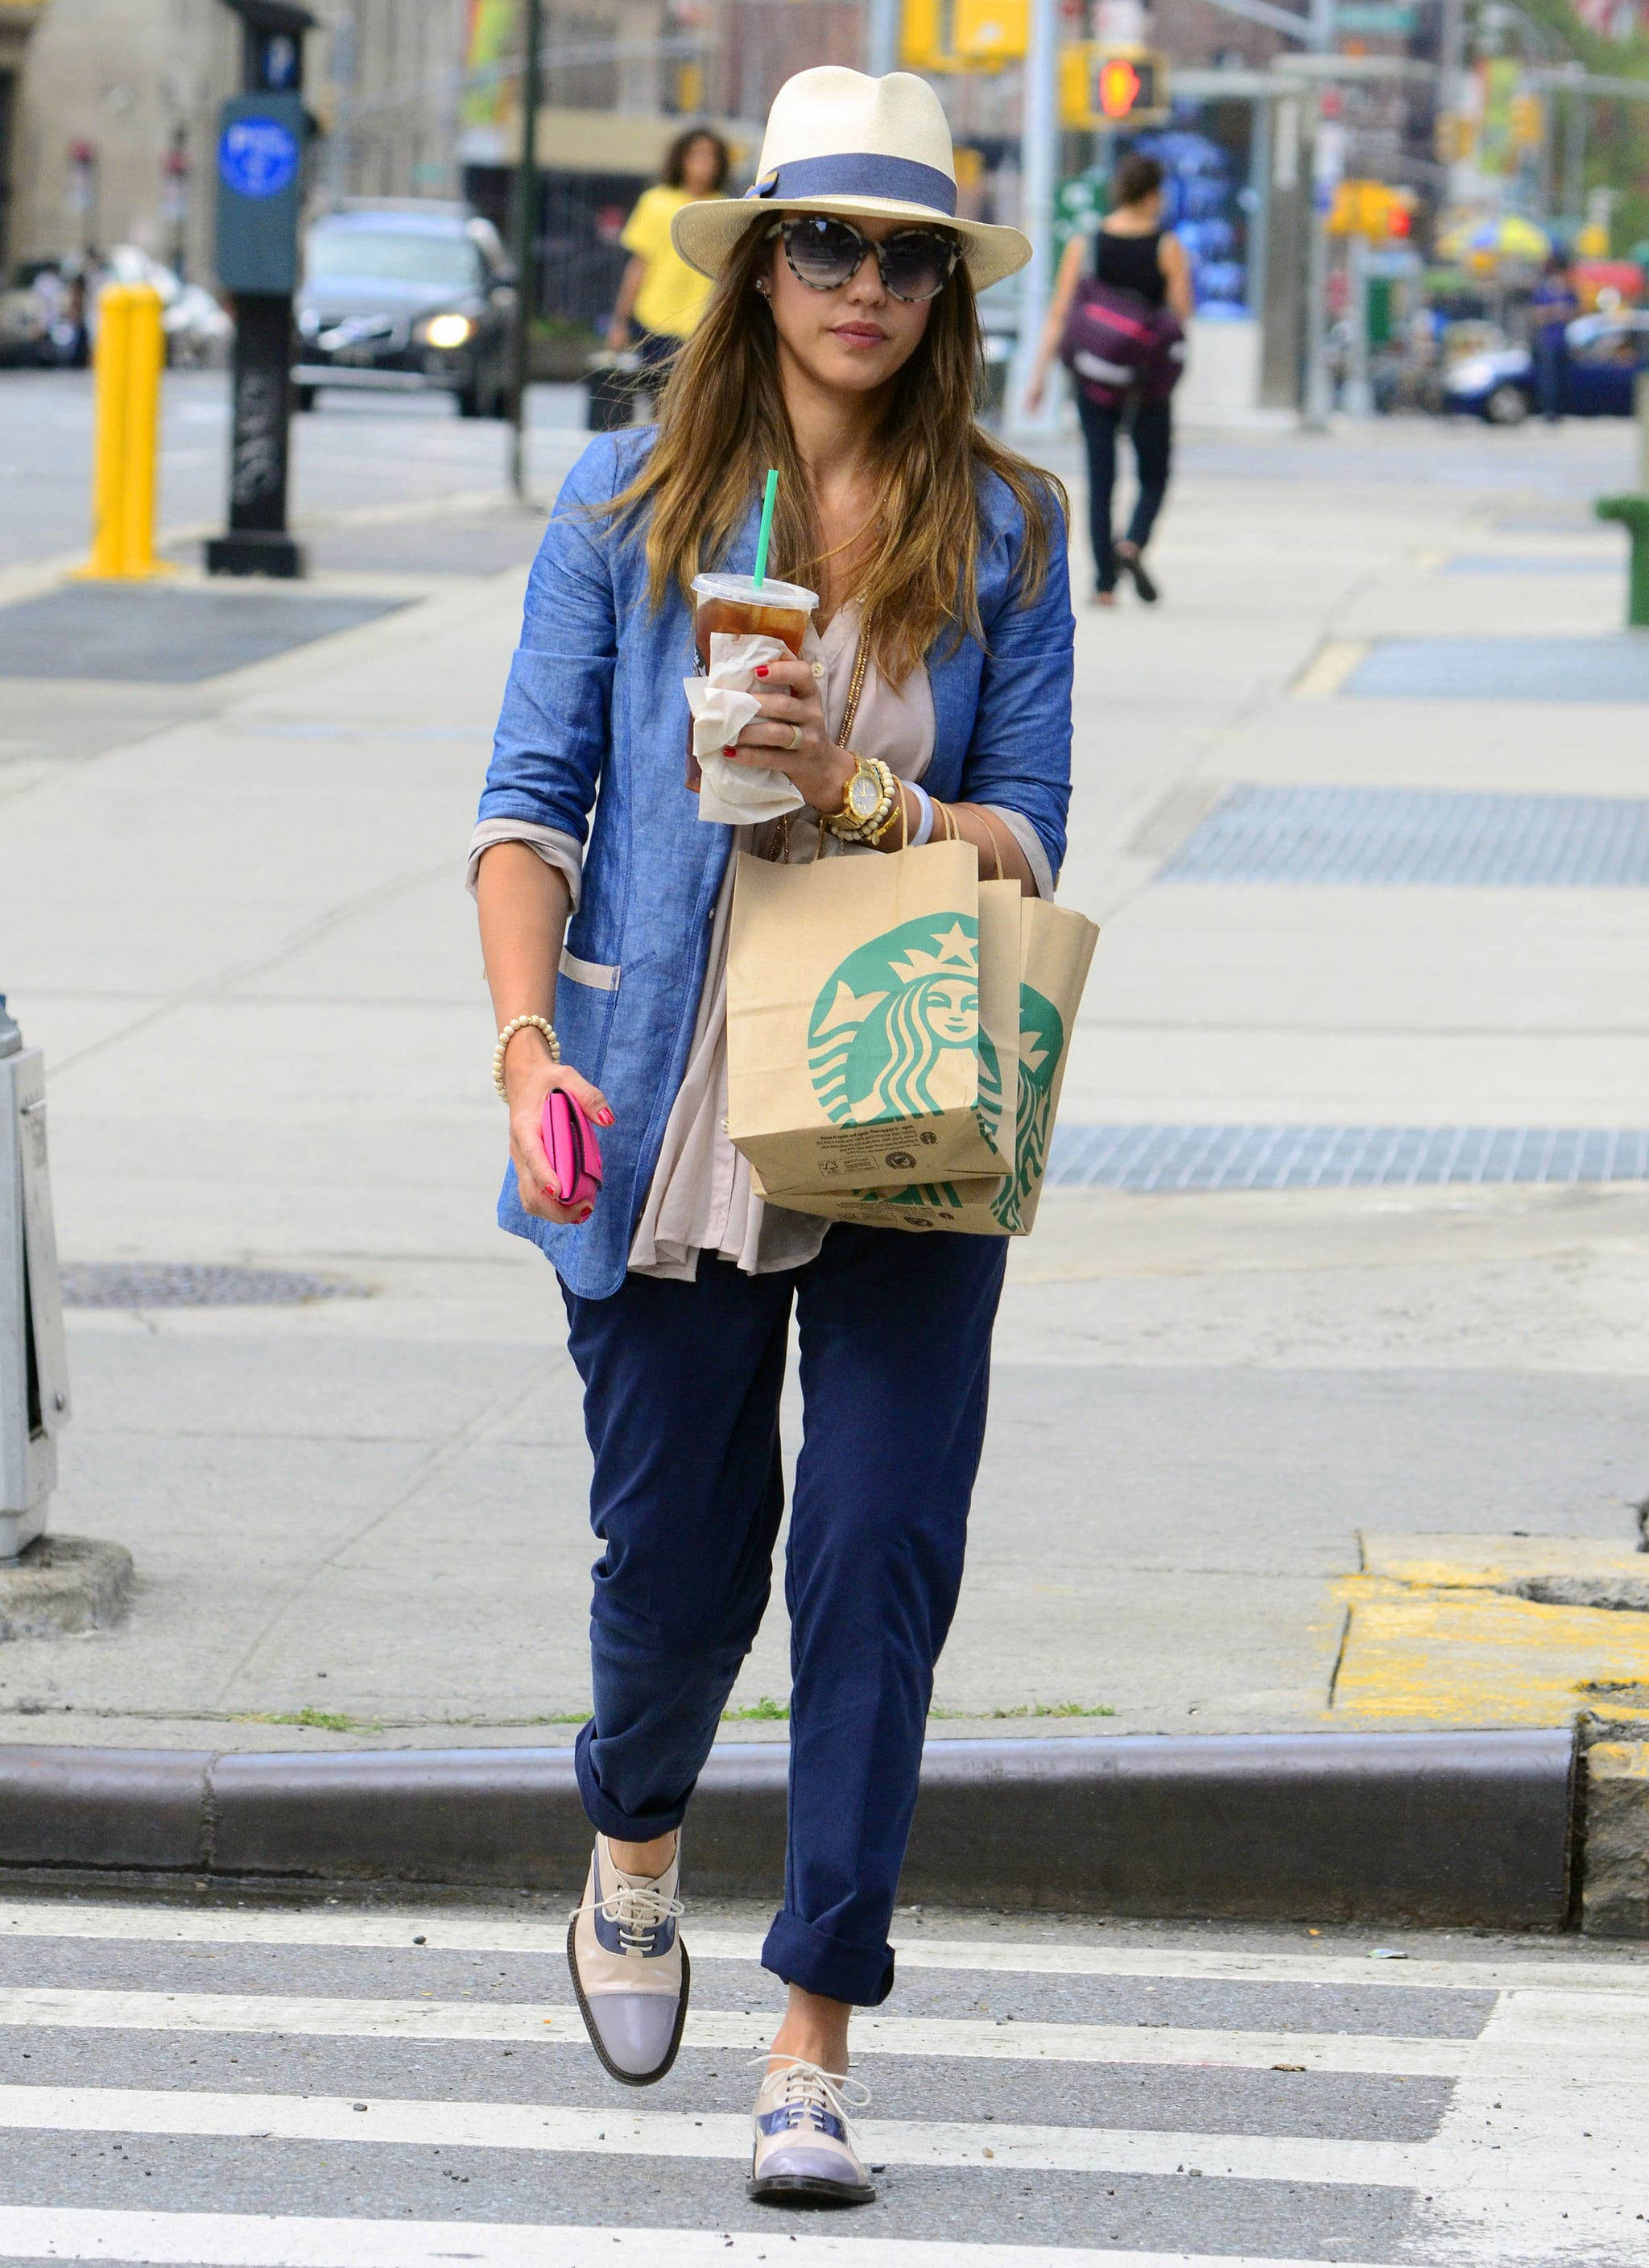 While strolling around NYC, Jessica accessorized her blue-on-blue look — chambray jacket and cuffed navy trousers — with a Tory Burch fedora, tie-dye shades, and tricolor patent oxfords.